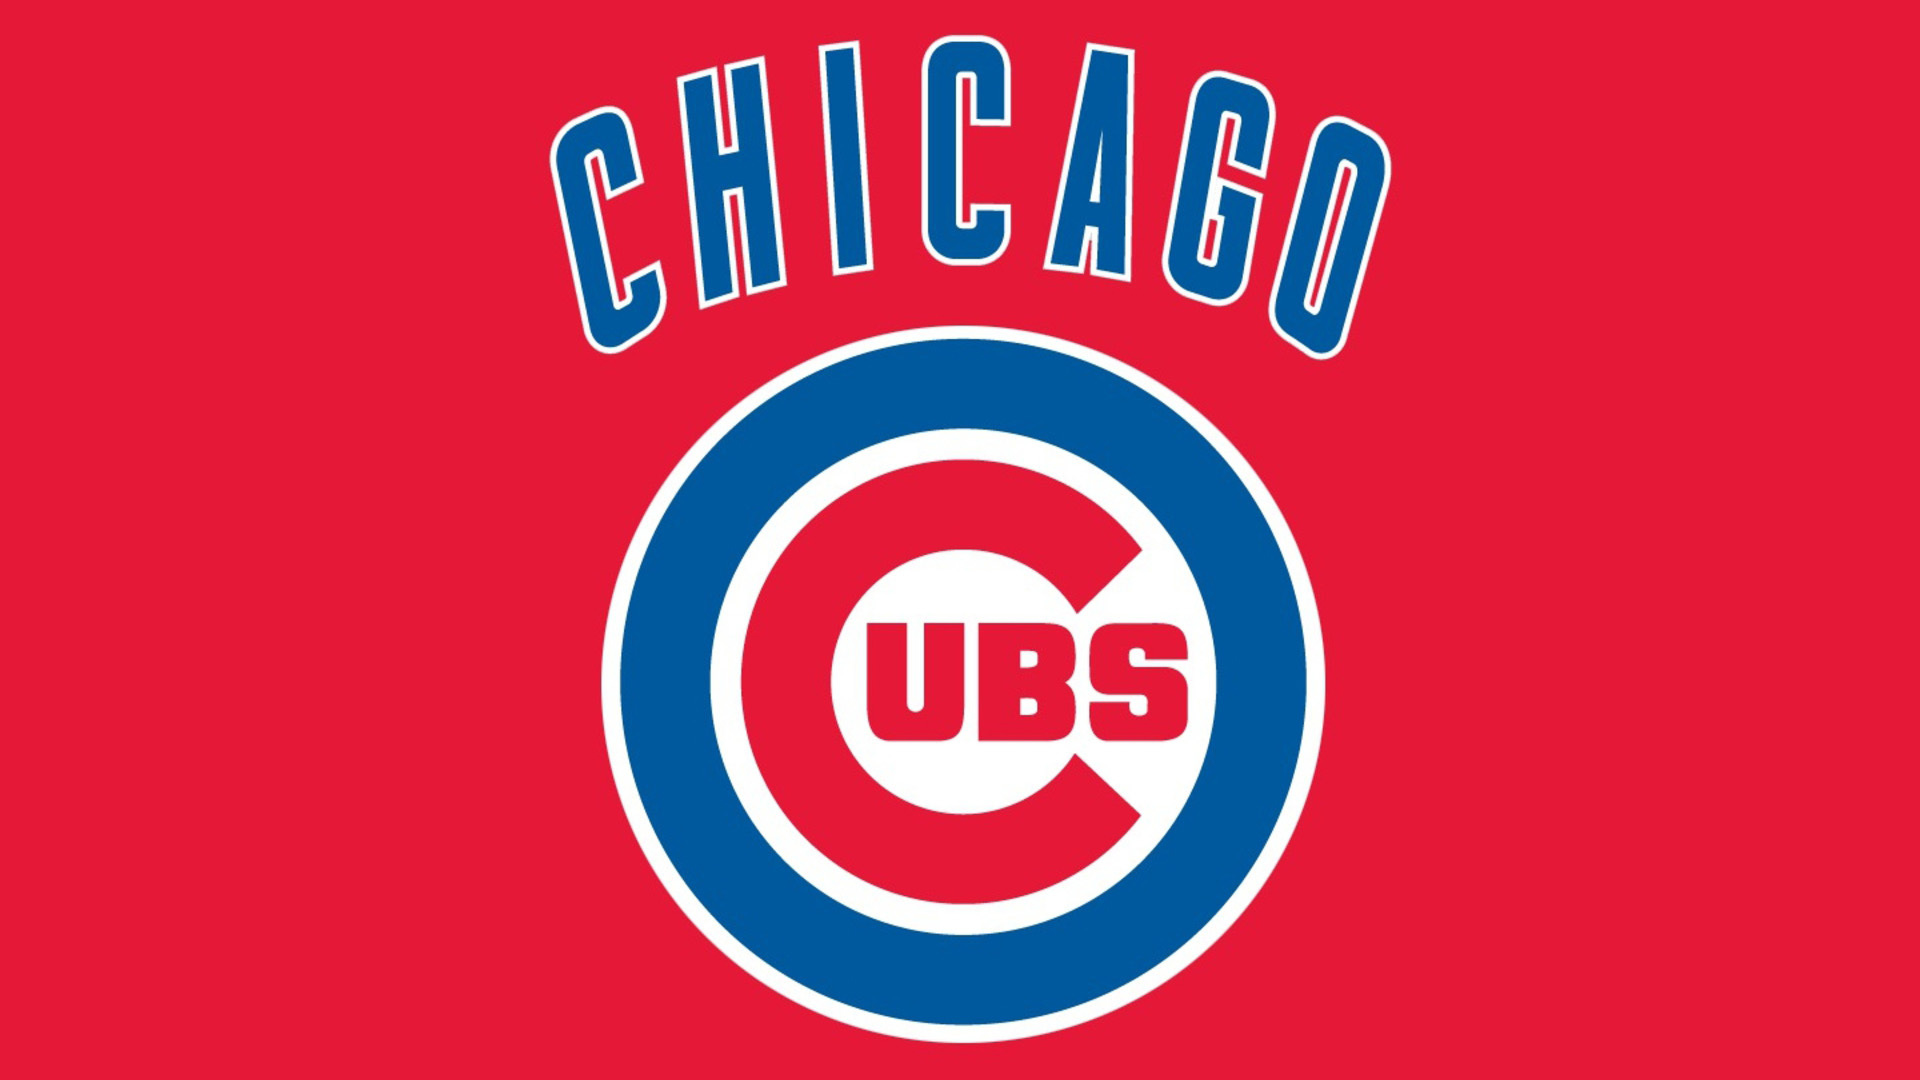 Chicago cubs wallpapers images photos pictures backgrounds - Cubs background ...